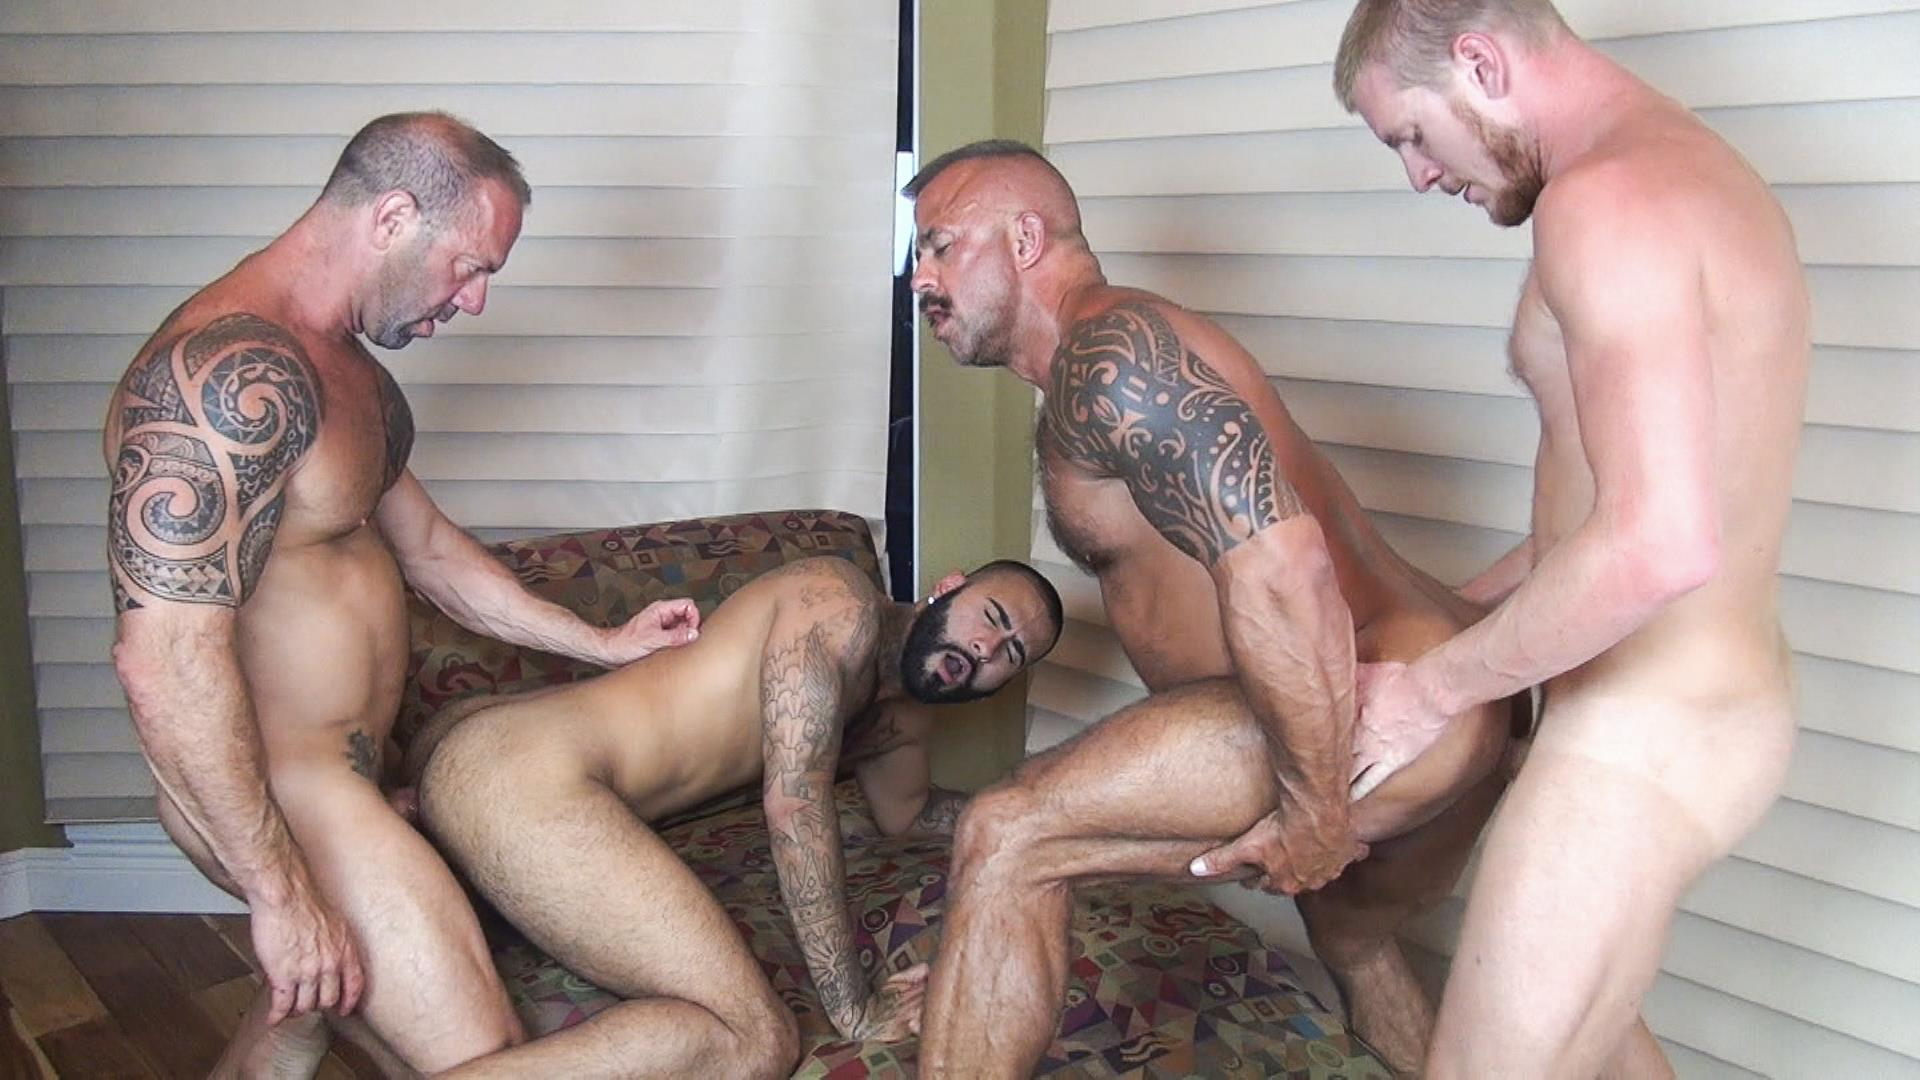 Raw-Fuck-Club-Vic-Rocco-and-Rikk-York-and-Billy-Warren-and-Job-Galt-Bareback-Daddy-Amateur-Gay-Porn-09 Four Hairy Muscle Daddies In A Bareback Fuck Fest Orgy